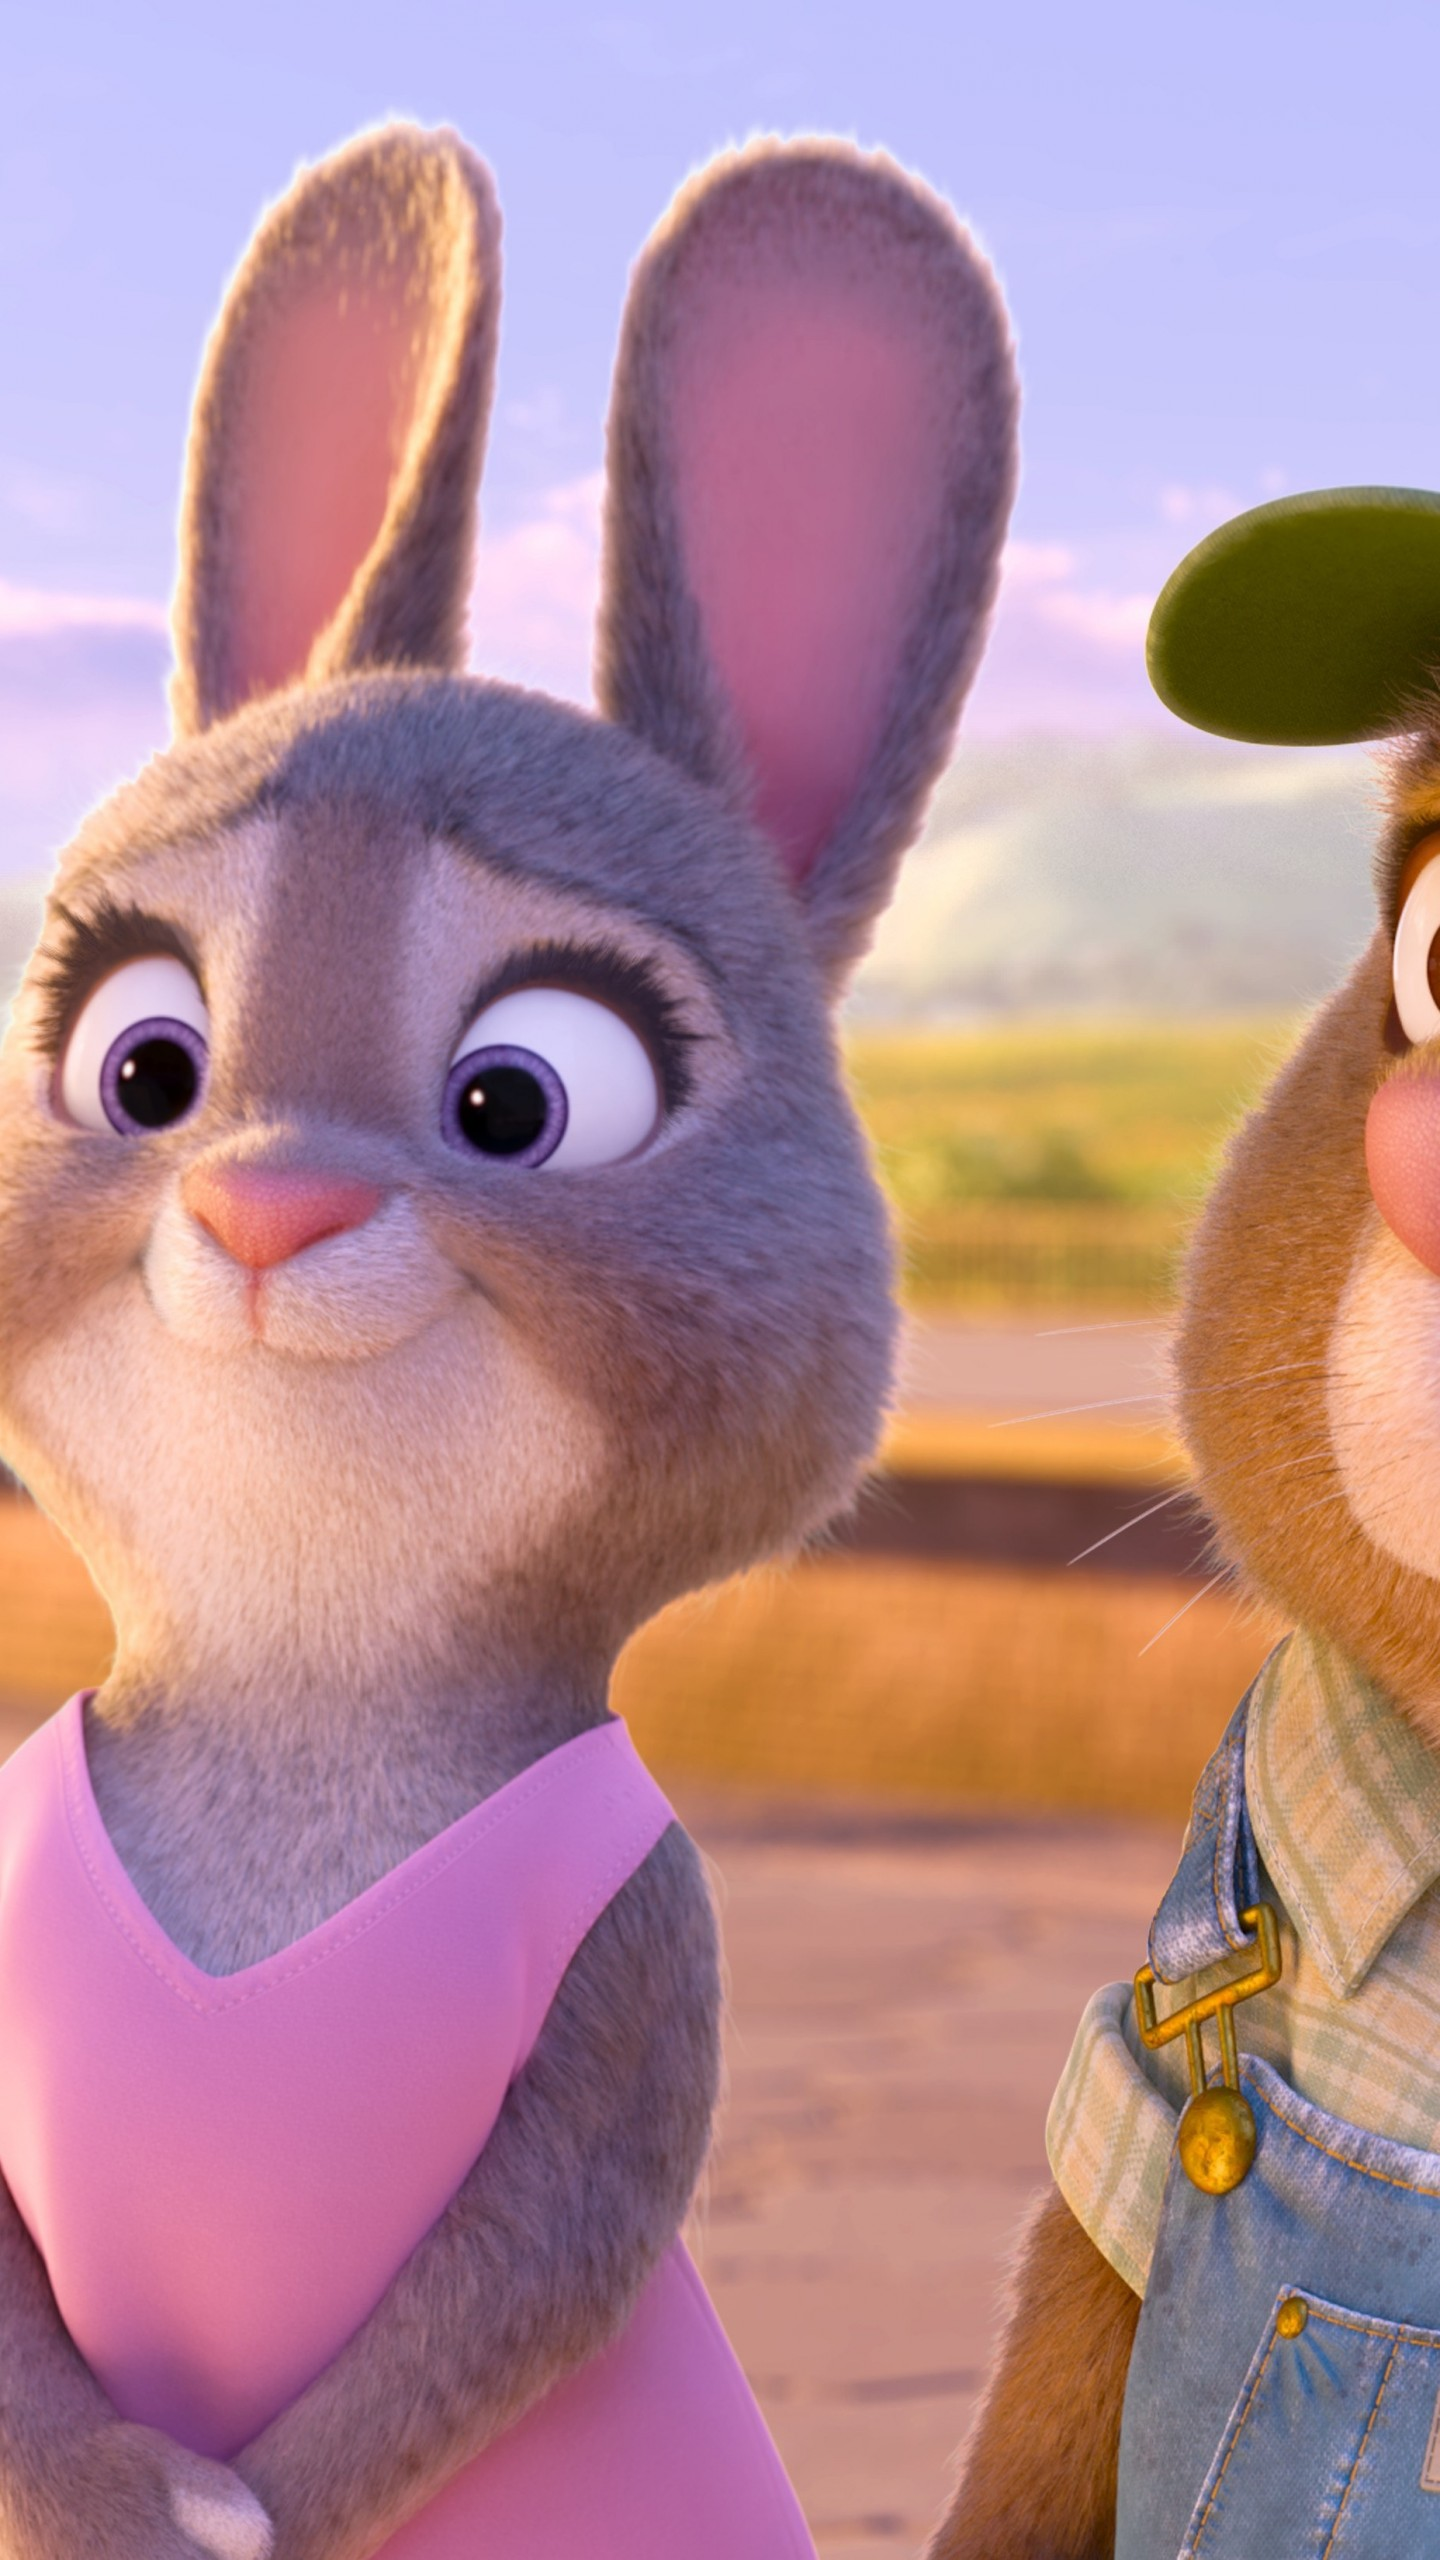 Best Animated Wallpapers Wallpaper Zootopia Rabbit Best Animation Movies Of 2016